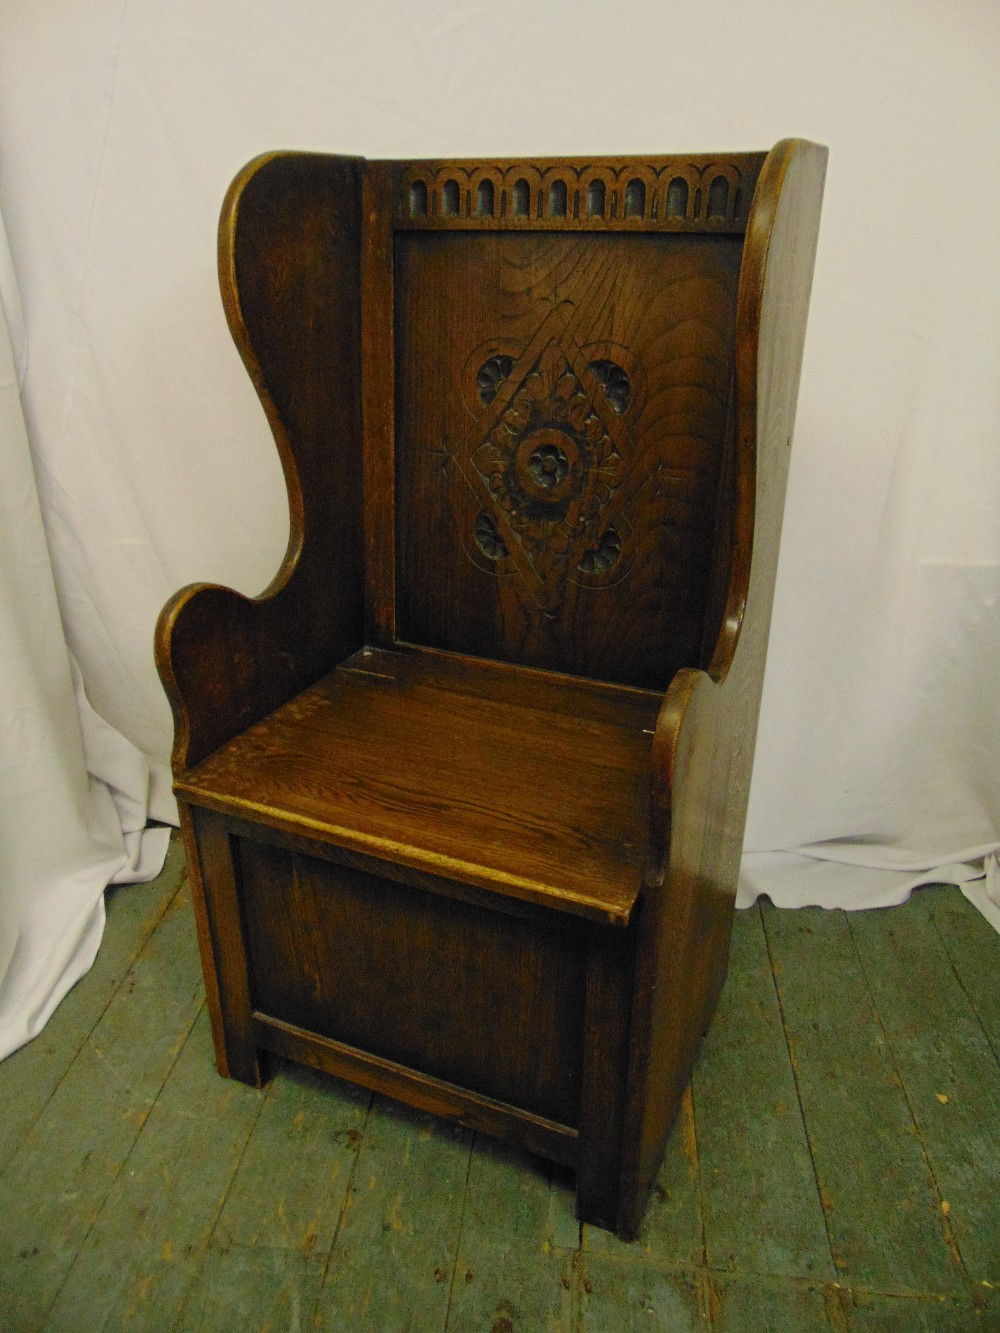 Lot 17 - An oak monks bench with carved back and hinged seat, 107 x 55.5 x 45cm